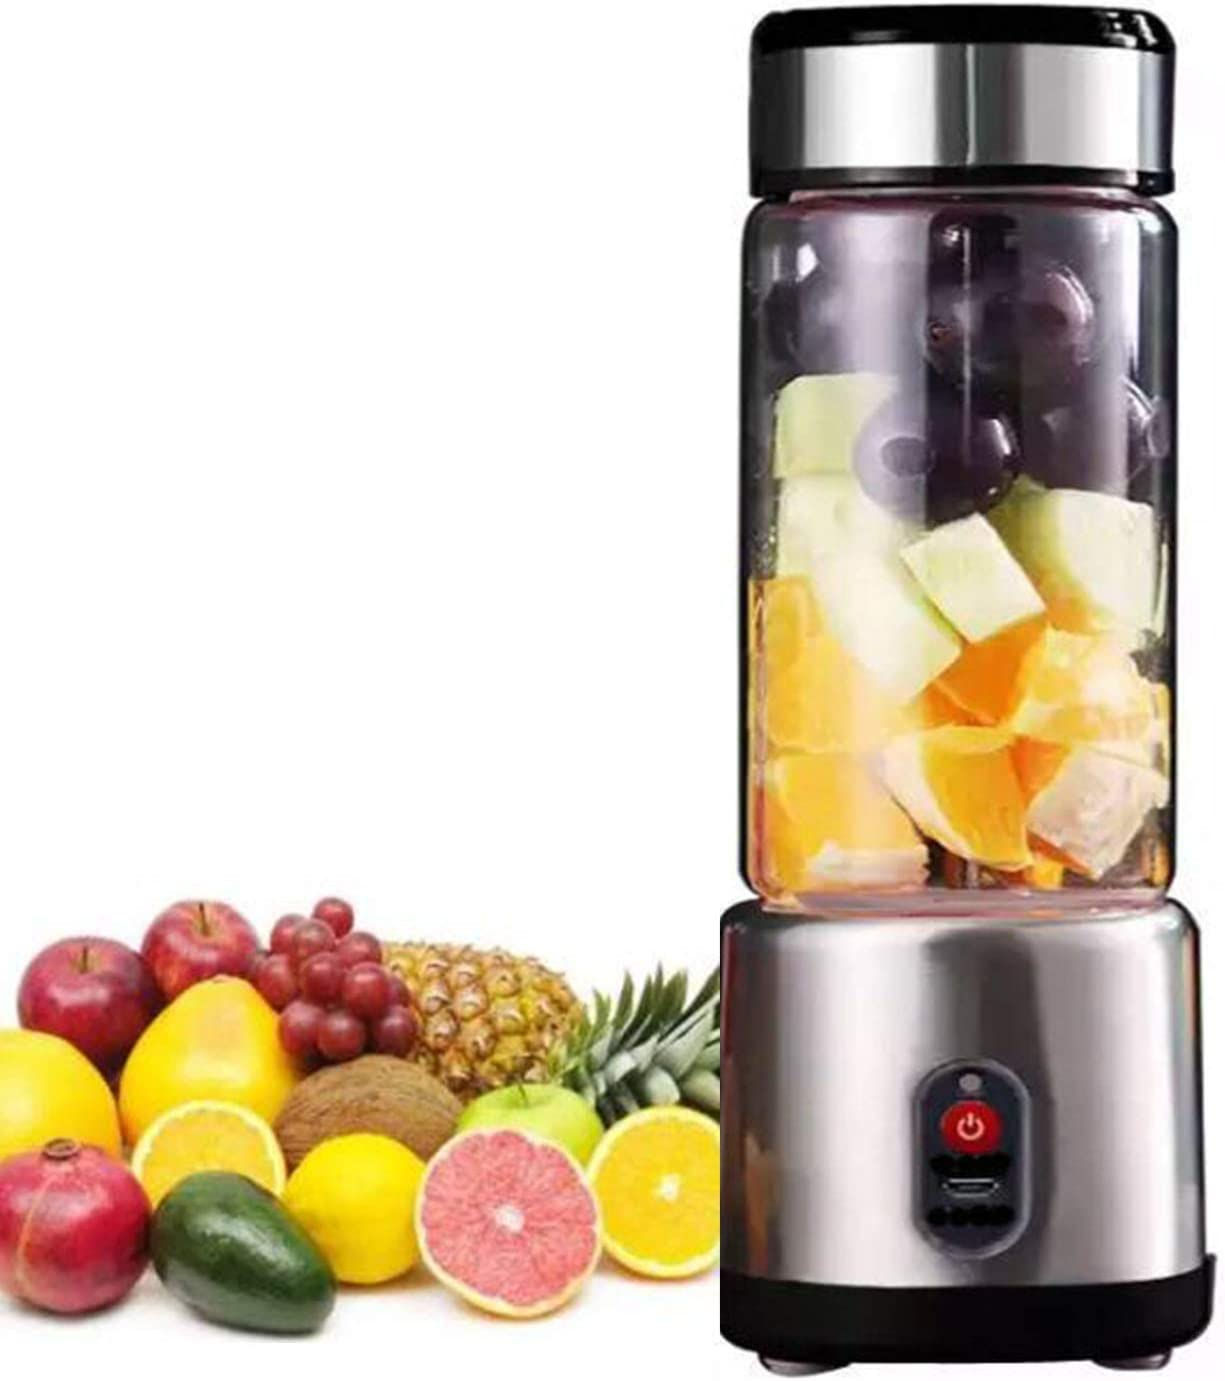 OOFAH Juicer- Portable Blender, Stainless Steel and Glass Body, with USB Rechargeable, Mini Juice Mixer for Shakes Smoothies Home Outdoor